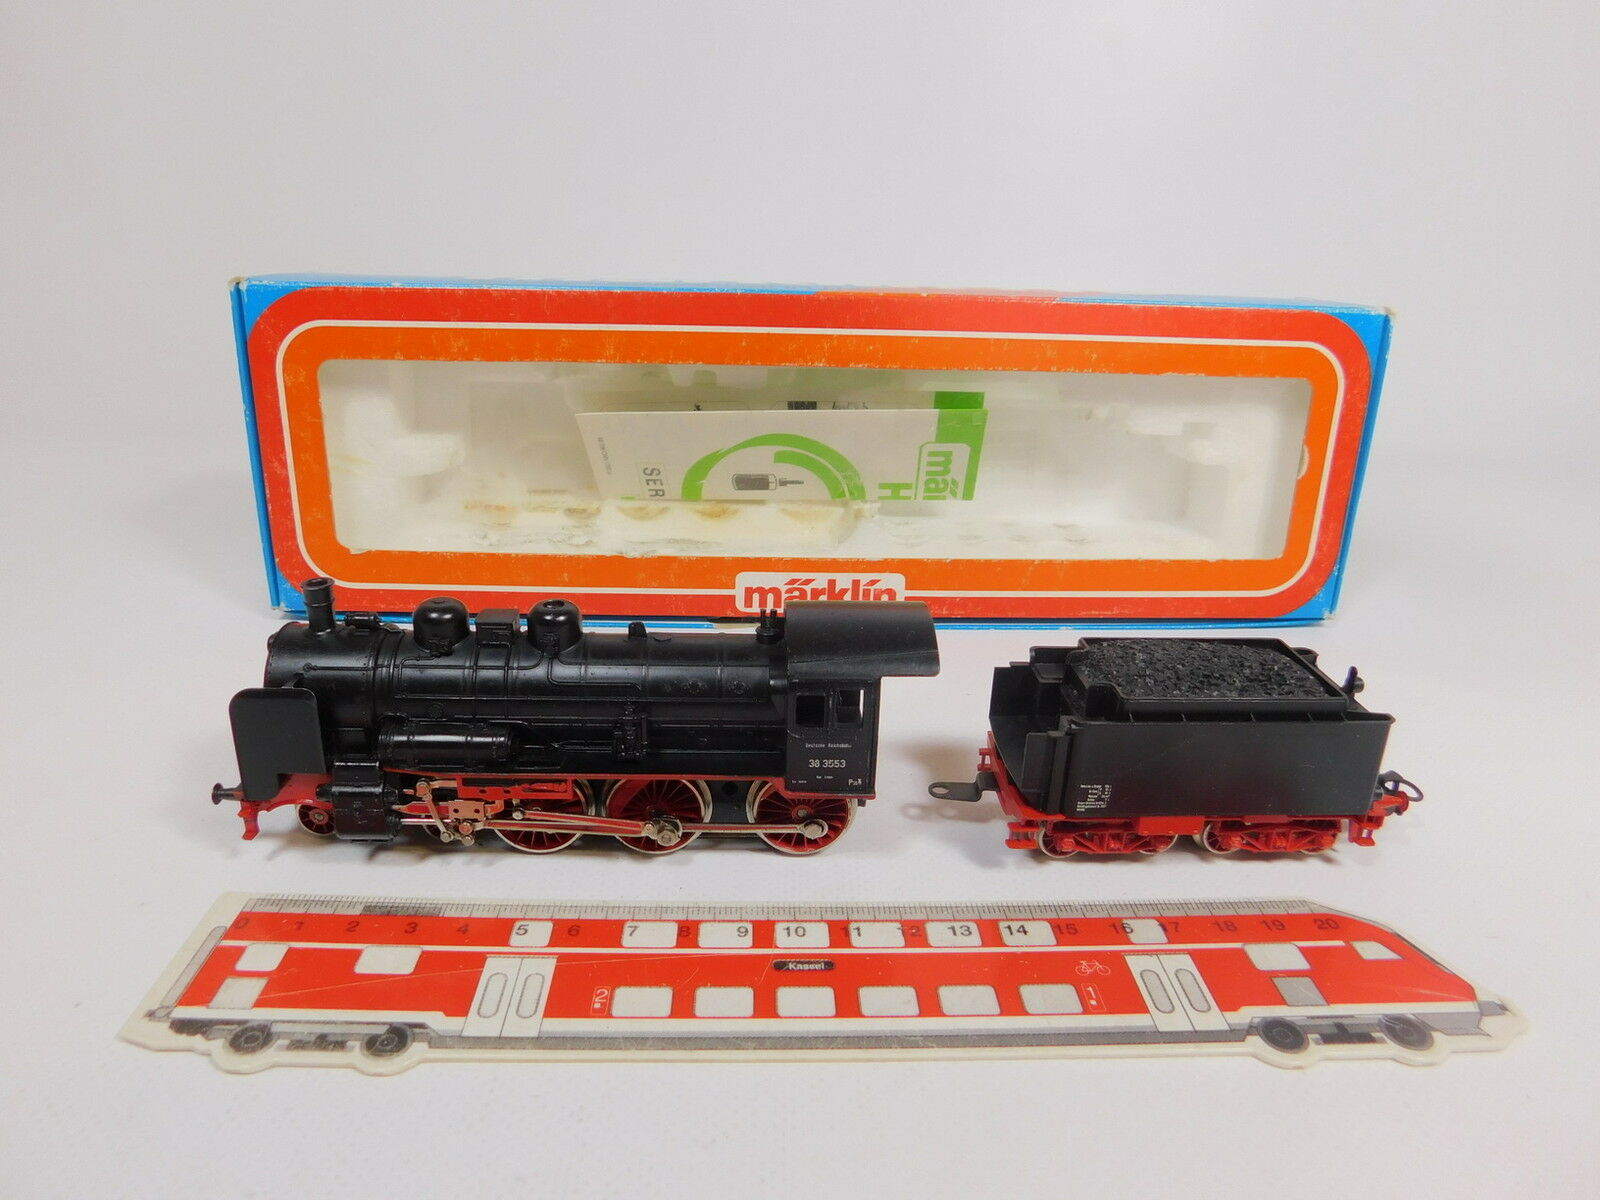 Aq609-2Märklin H0 AC 3099 Locomotive with Tender   Steam 38 3553 Dr, Very Good